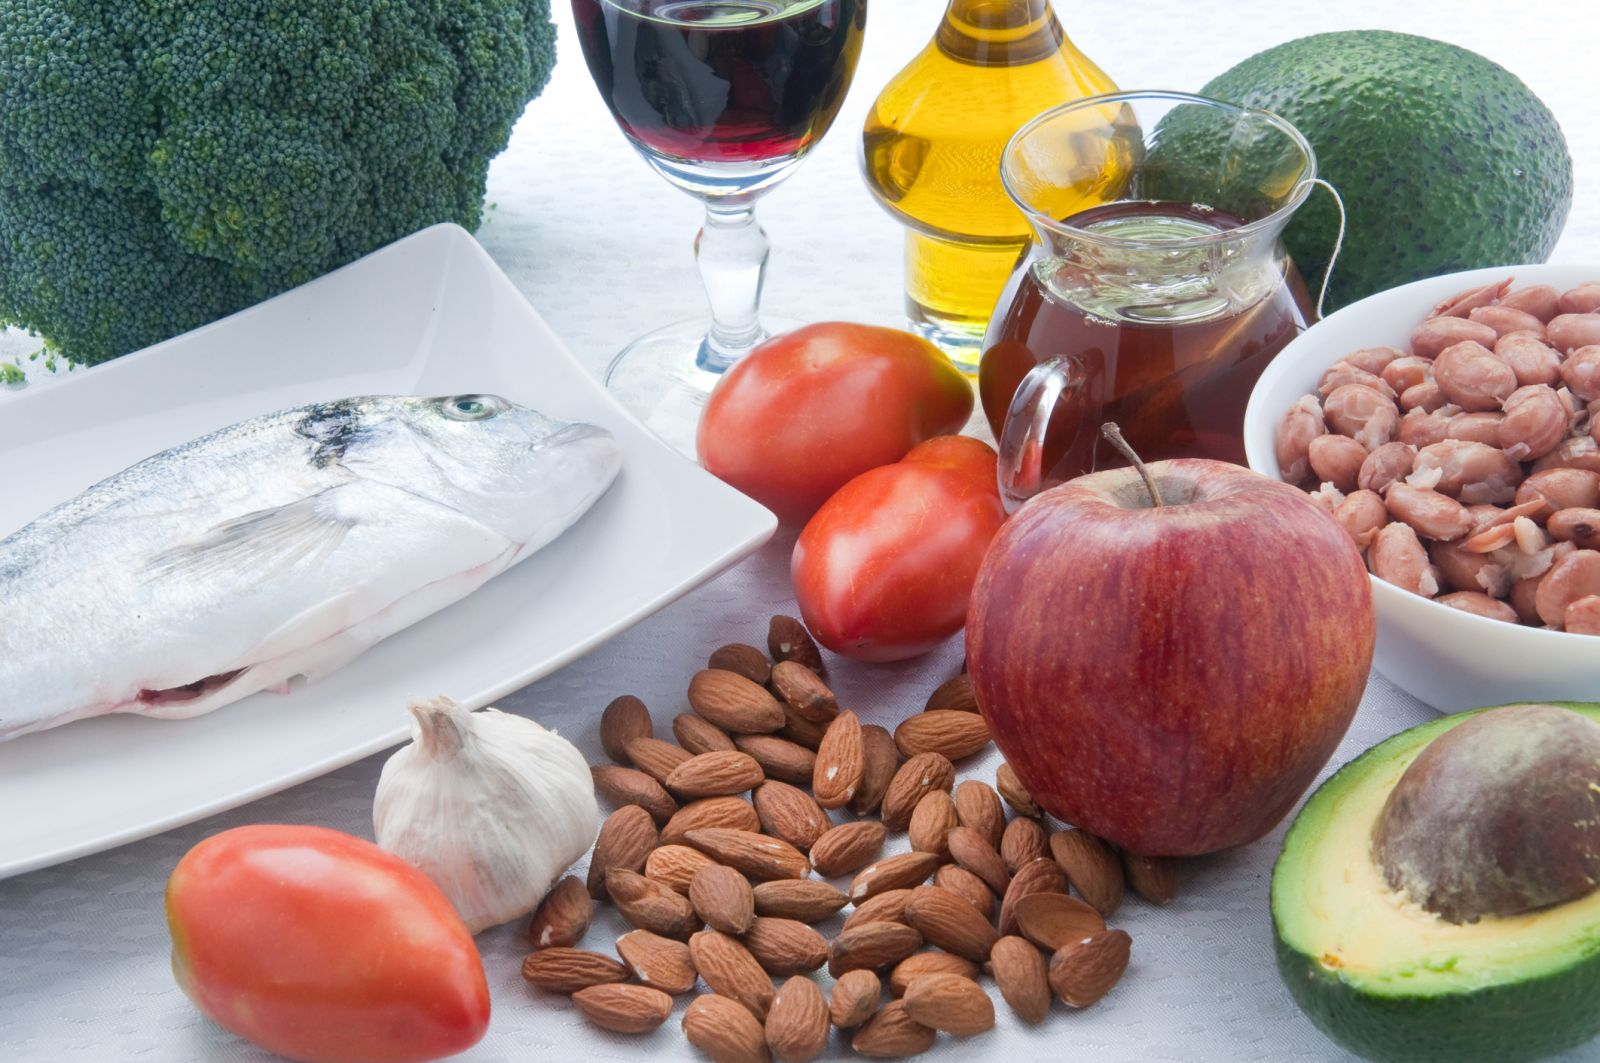 Top 10 Foods That Lower Cholesterol Naturally